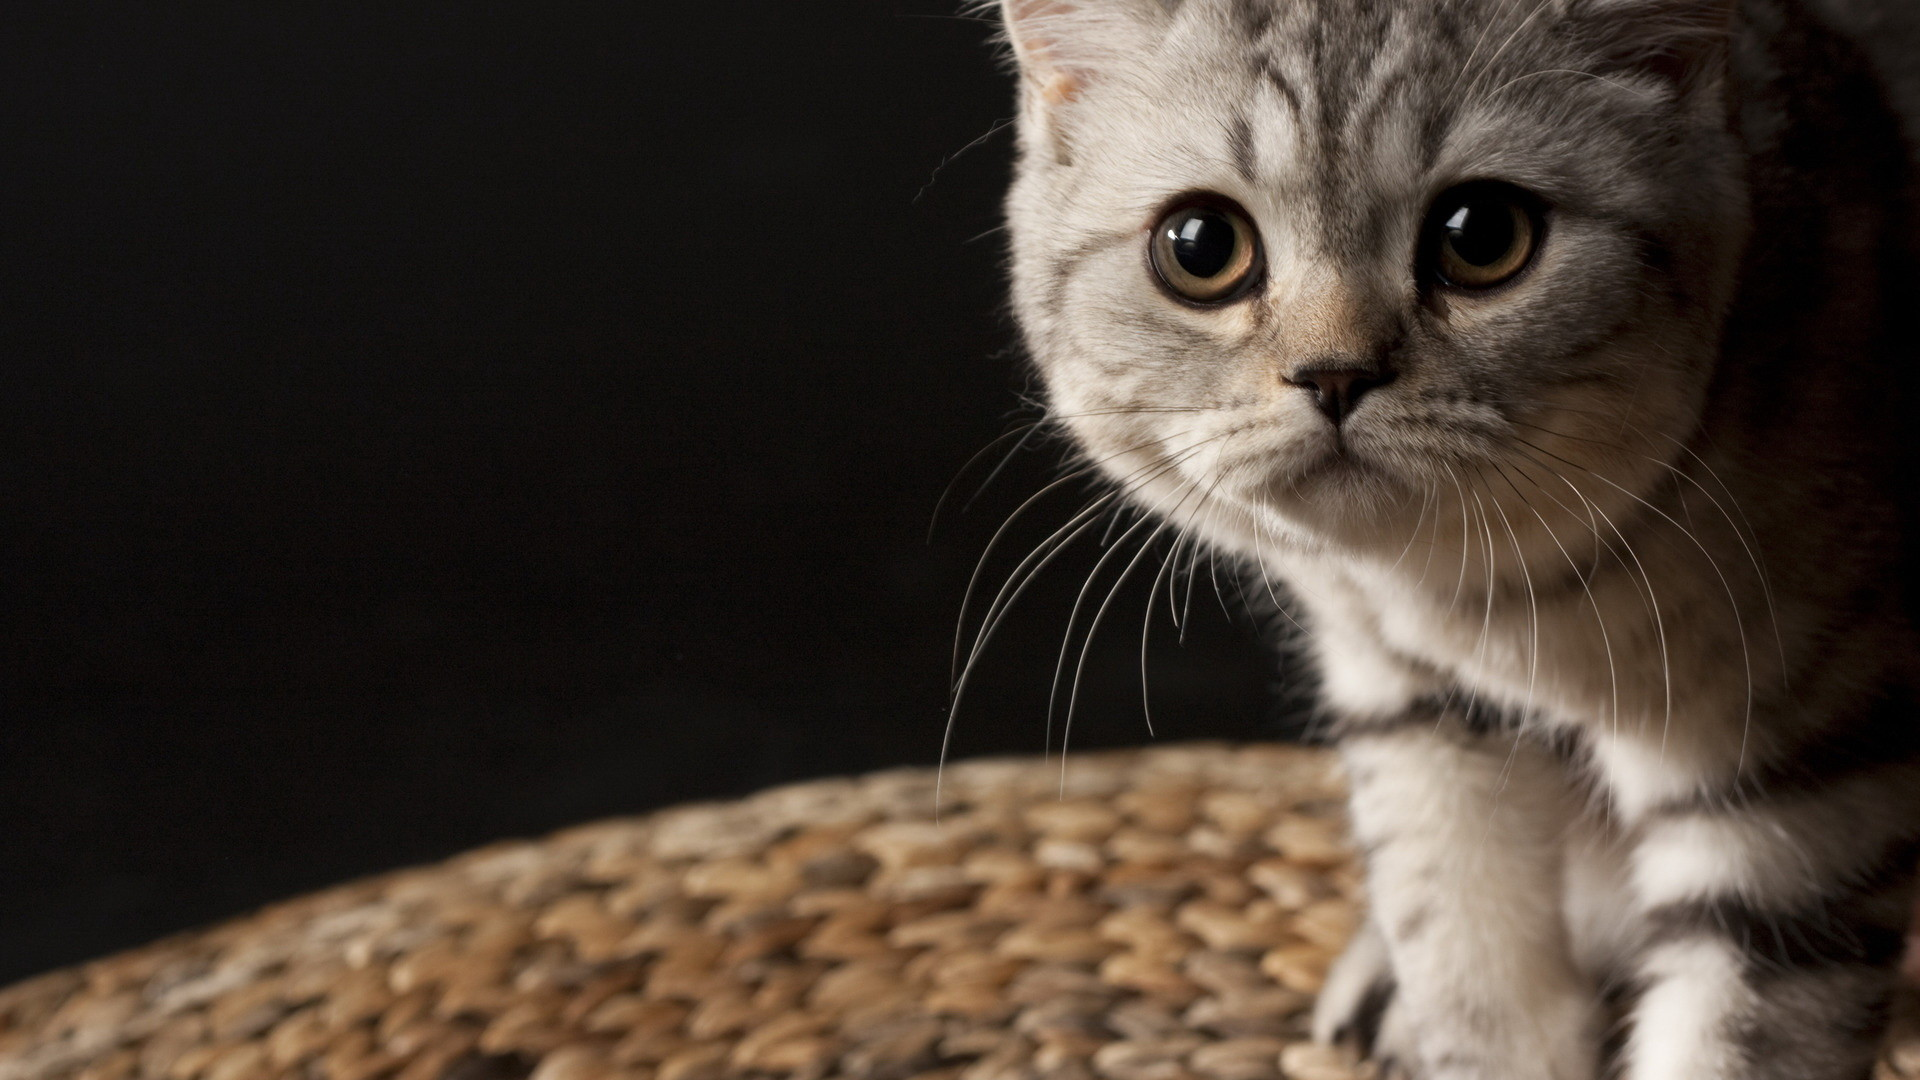 Cat Wallpaper Wallpapers,other Wallpapers .